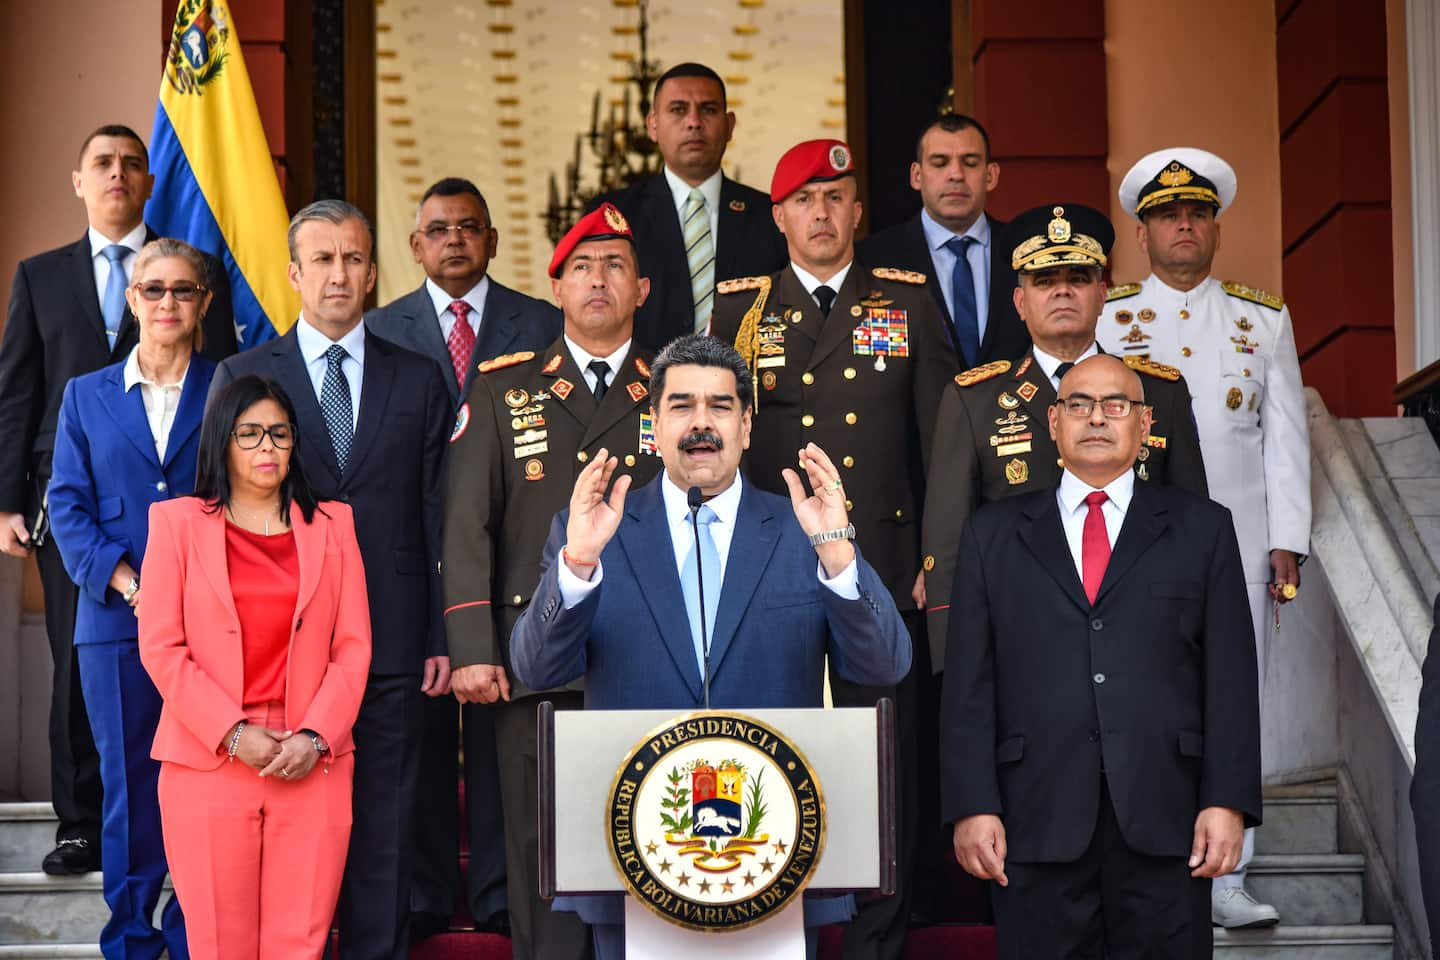 Biden has limited options to foster change in Venezuela as Maduro remains firmly in power